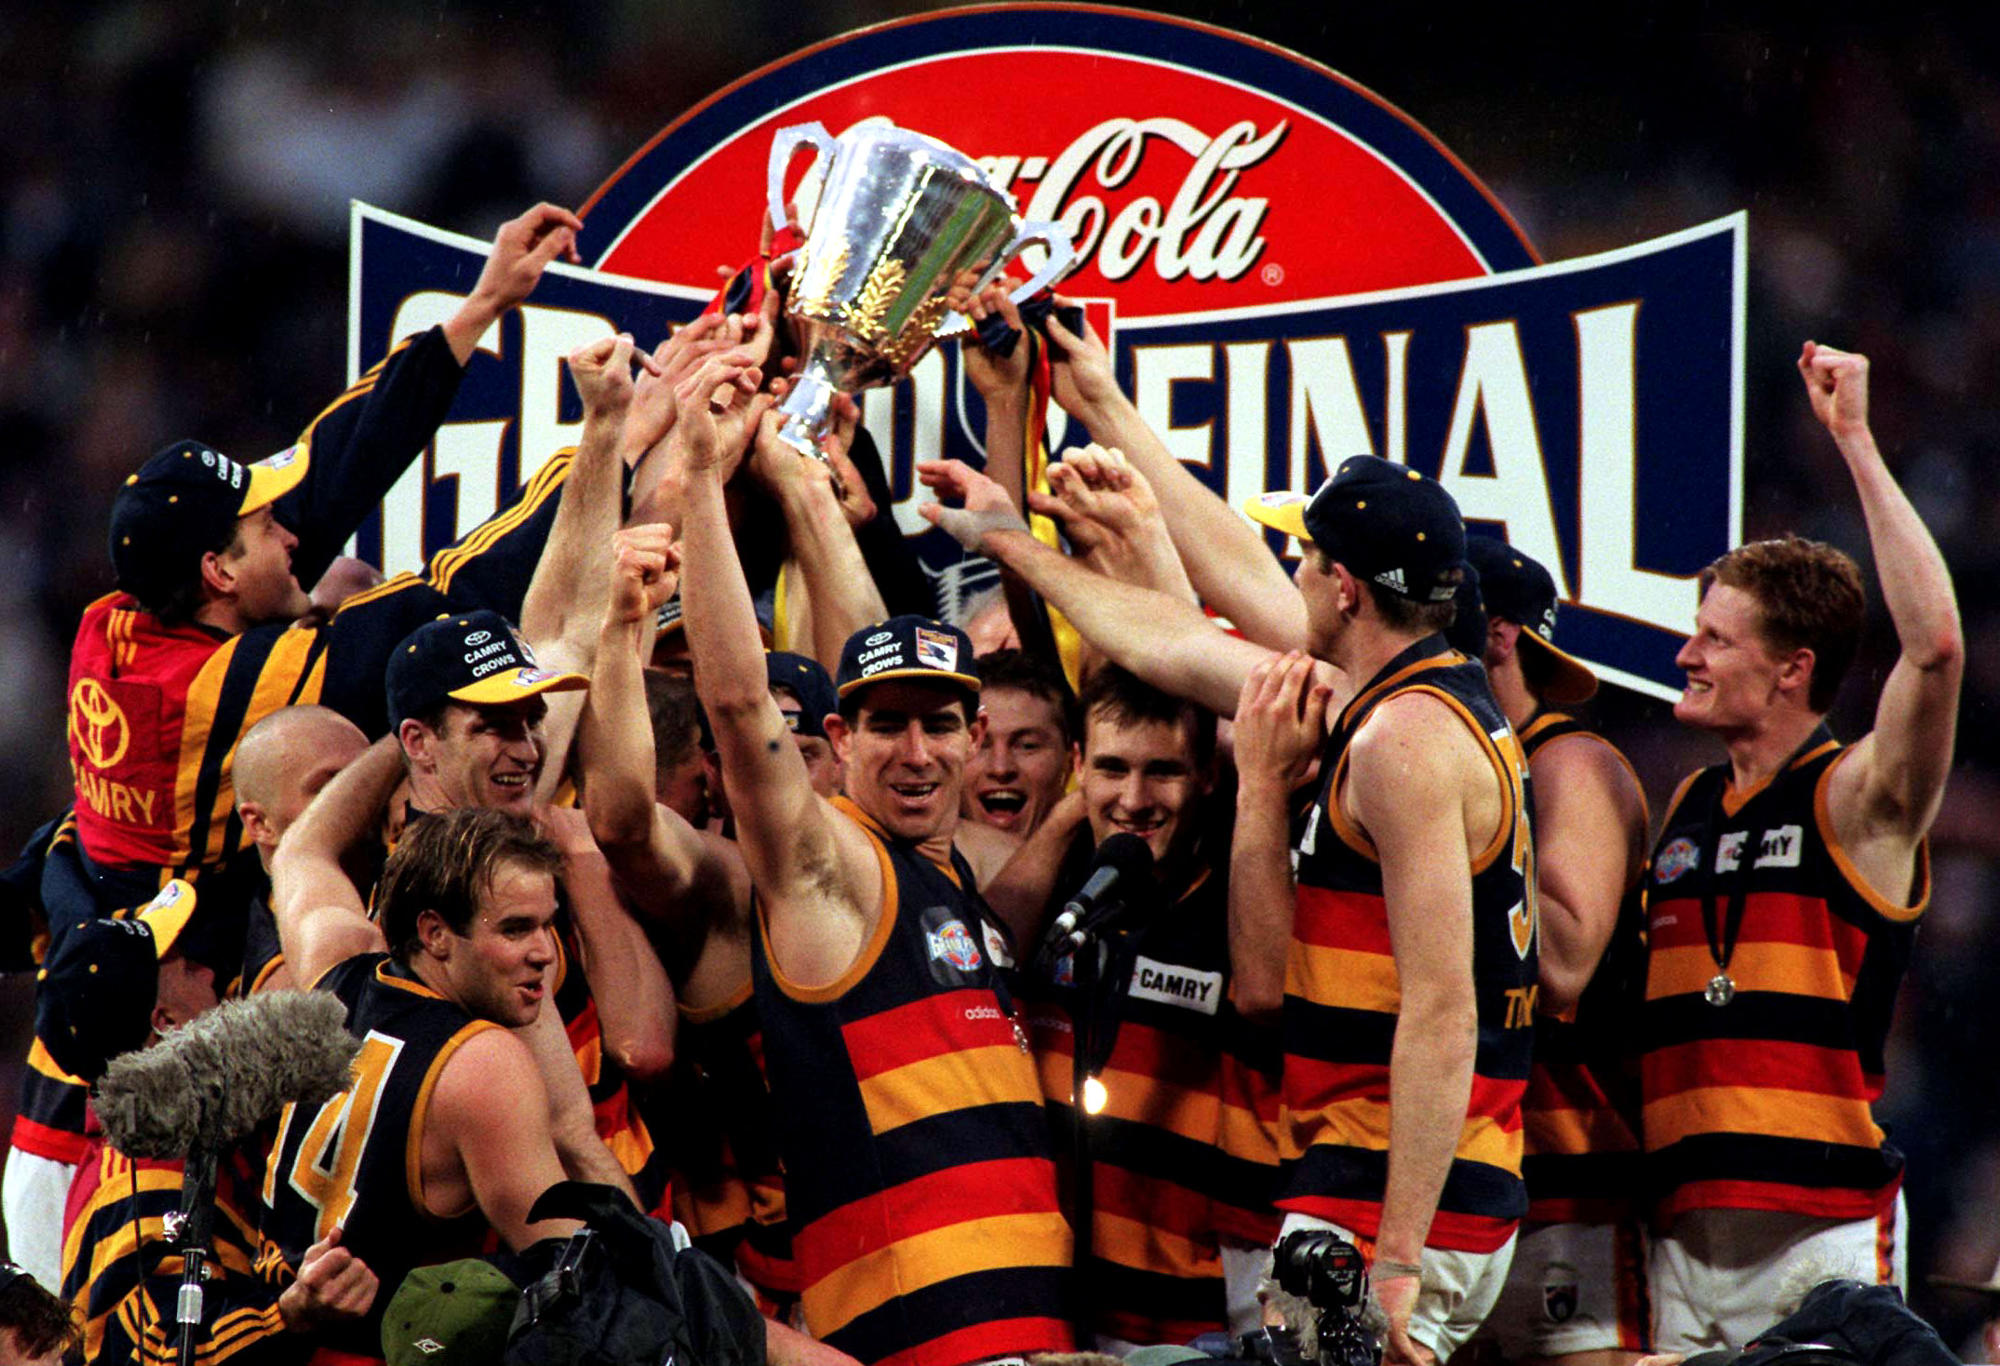 The Adelaide Crows team celebrates their victory over St Kilda in the 1997 AFL Grand Final at the MCG in Melbourne, Australia.